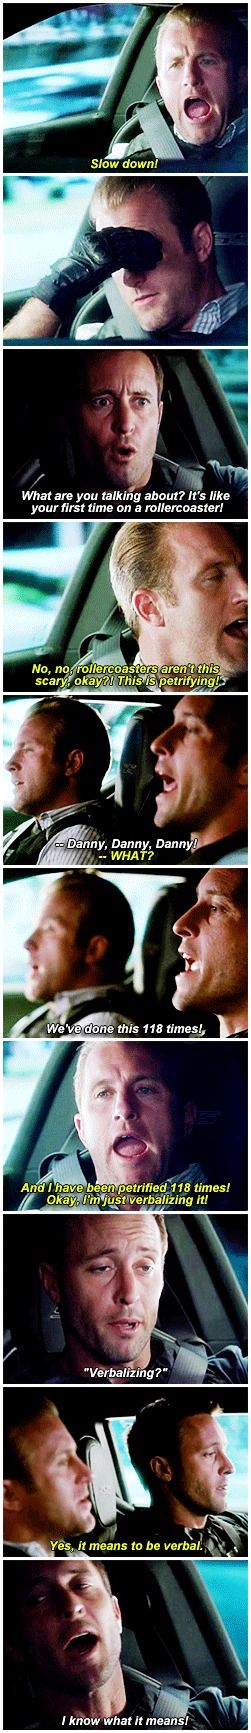 hawaii five 0 mcdanno scott caan alex o'loughlin h50: 4x17 i feel like that's not an arbitrary number steve actually keeps count